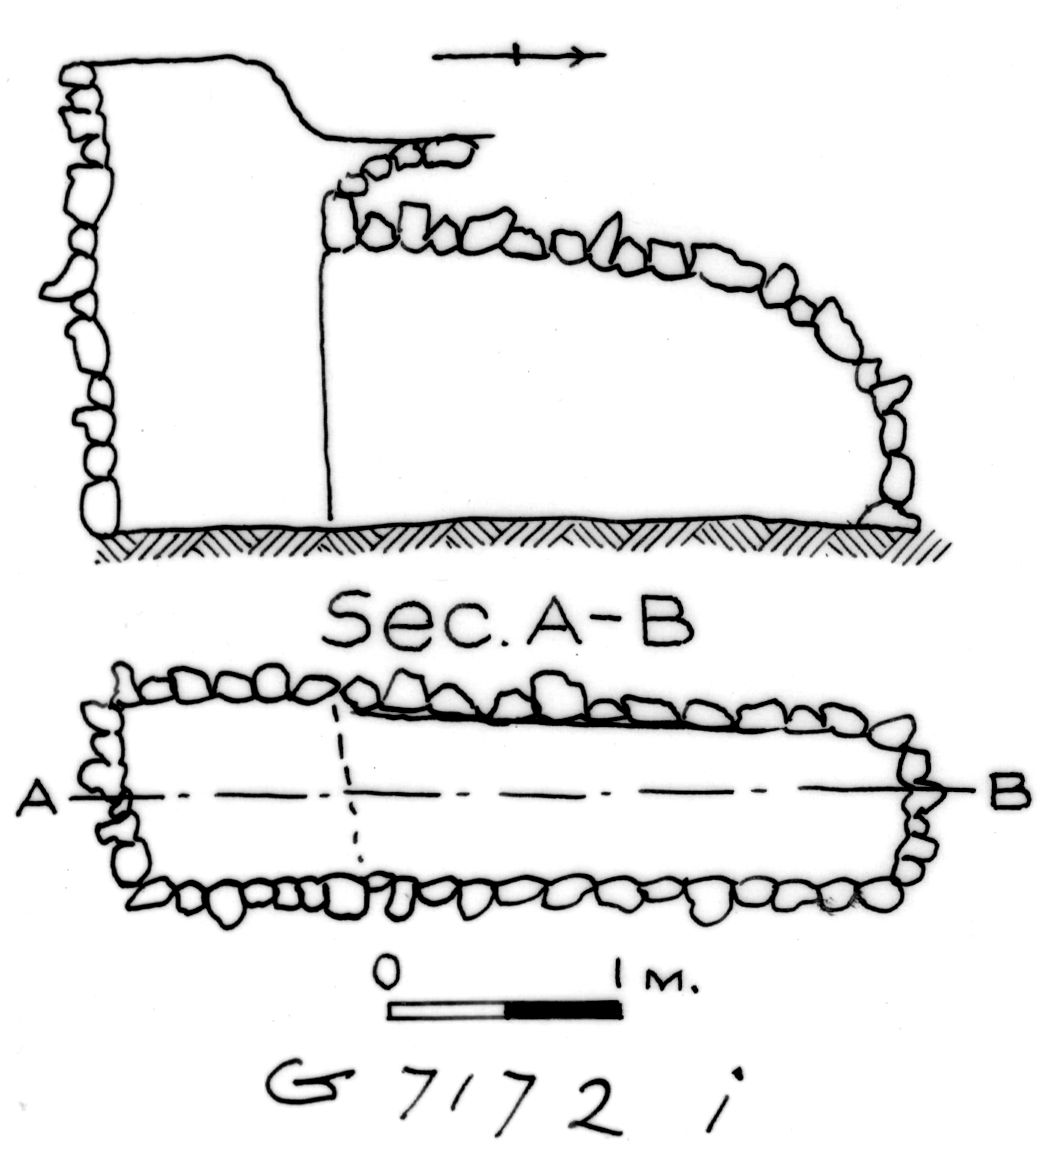 Maps and plans: G 7172, Shaft I